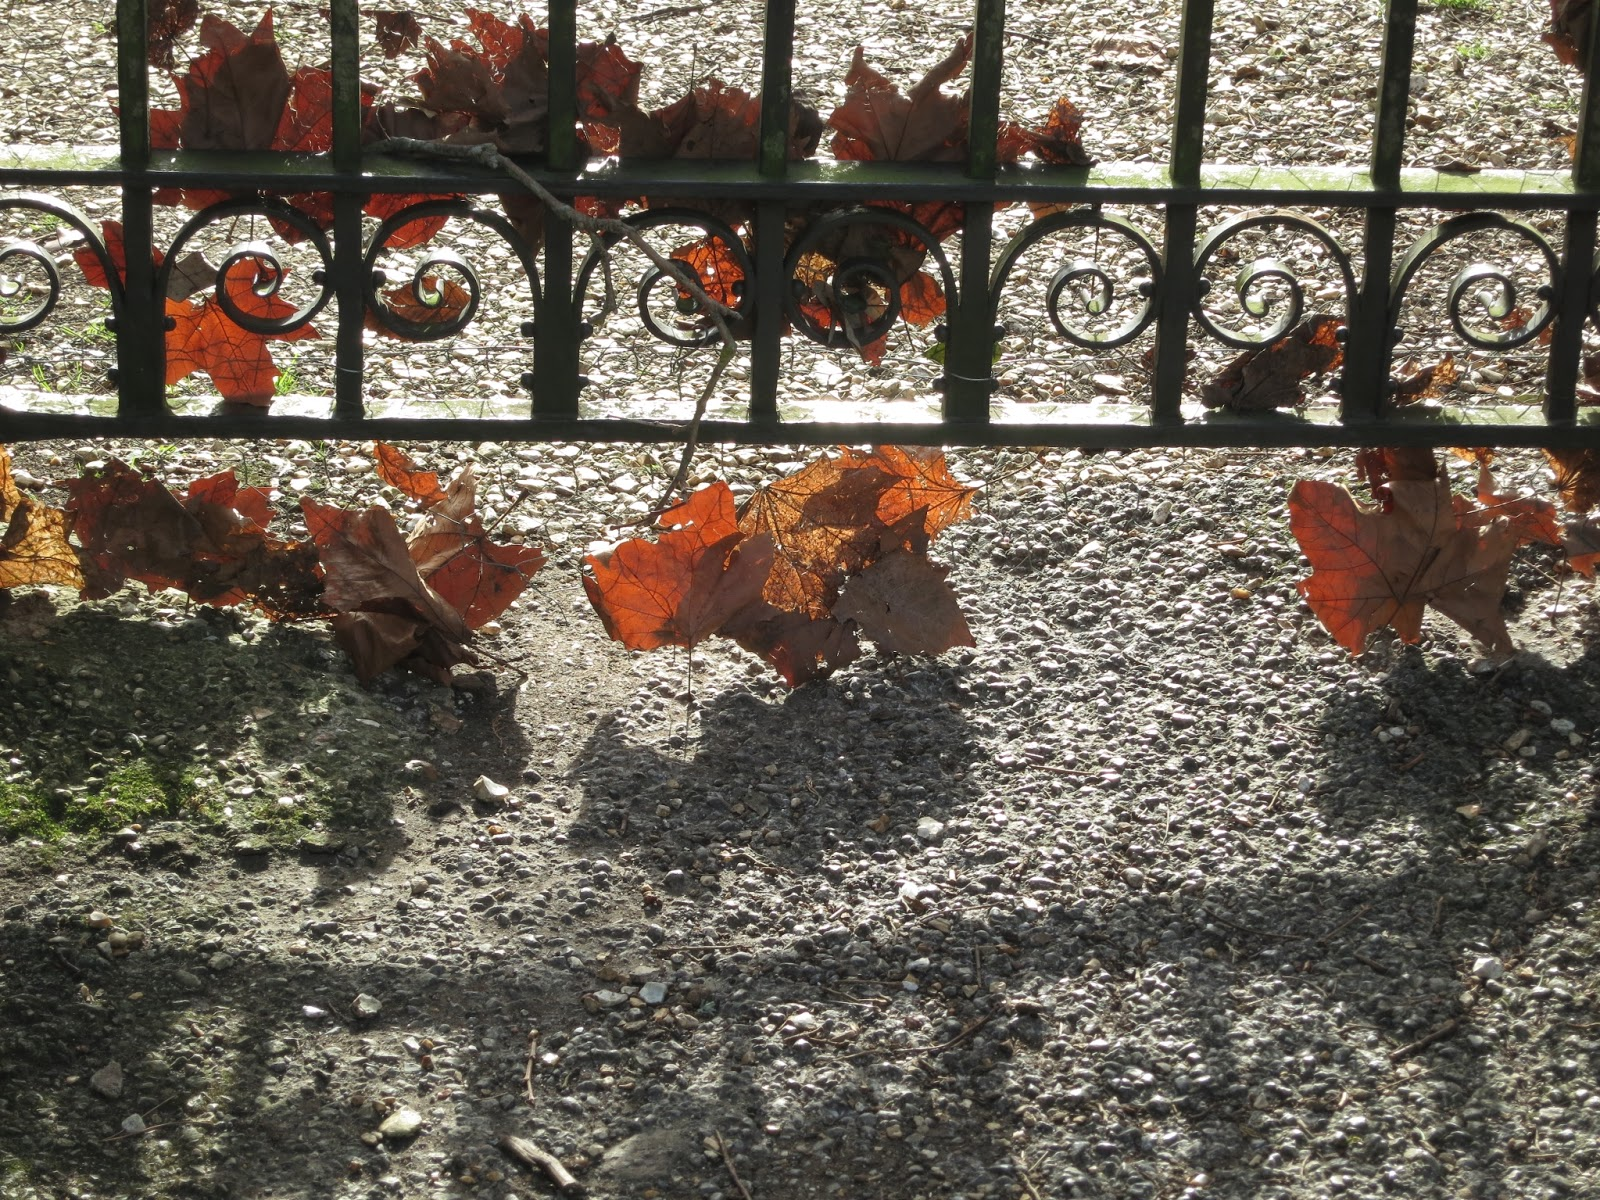 Brown leaves caught in wrought iron gate - with shadow.